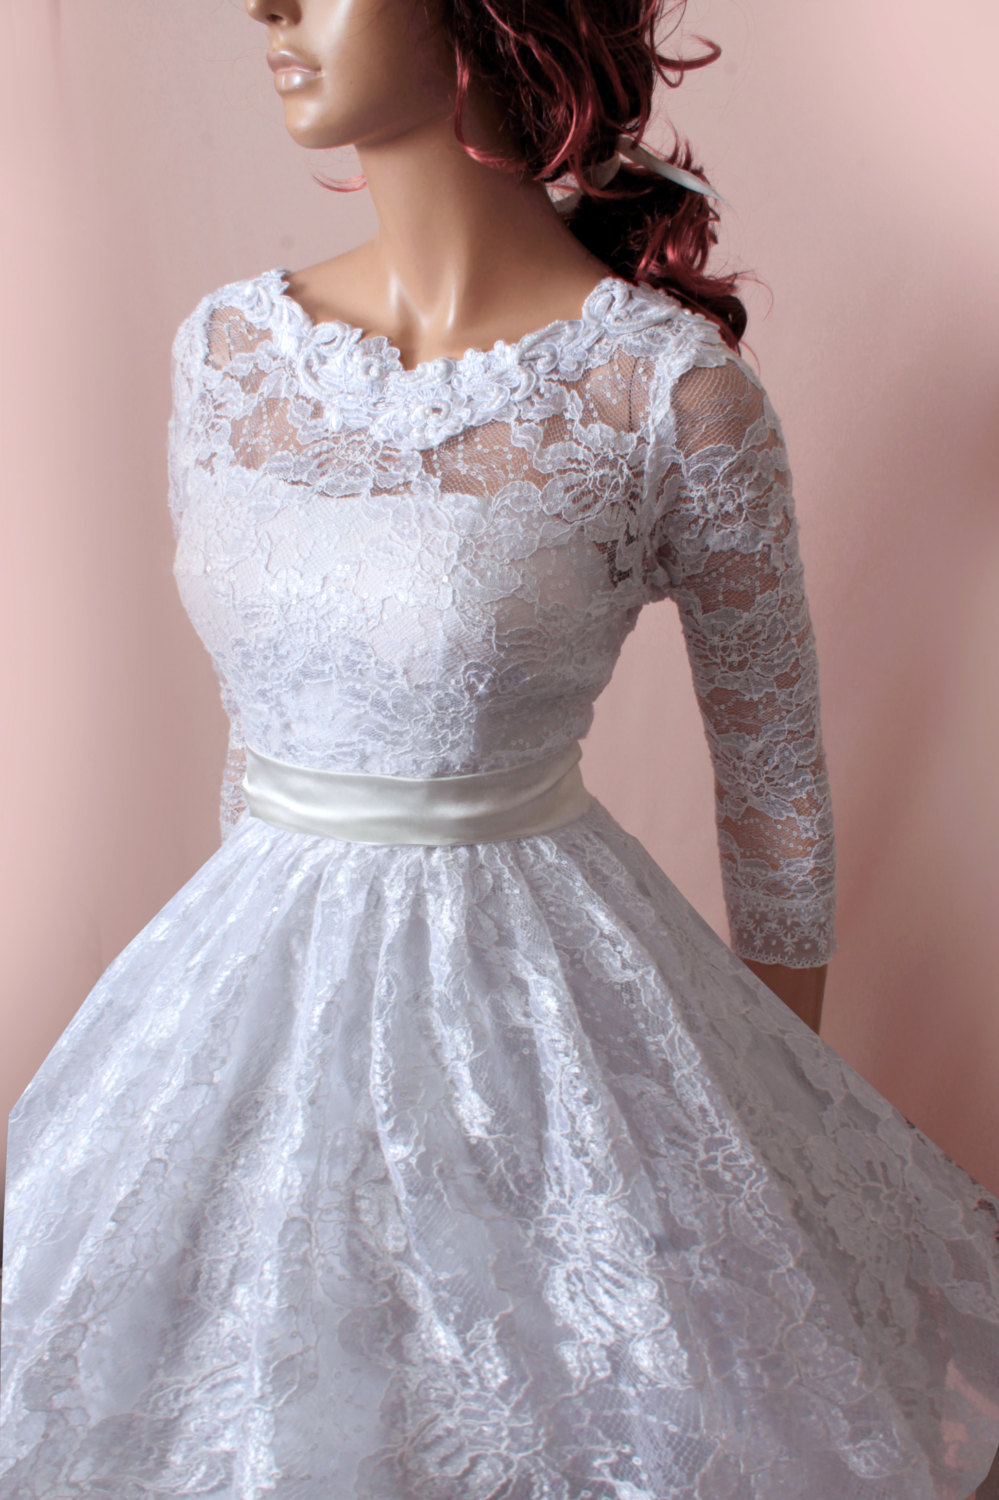 Wedding Dresses 3 4 Sleeves Lace : Lace dresses sleeves bridal gown plus size wedding